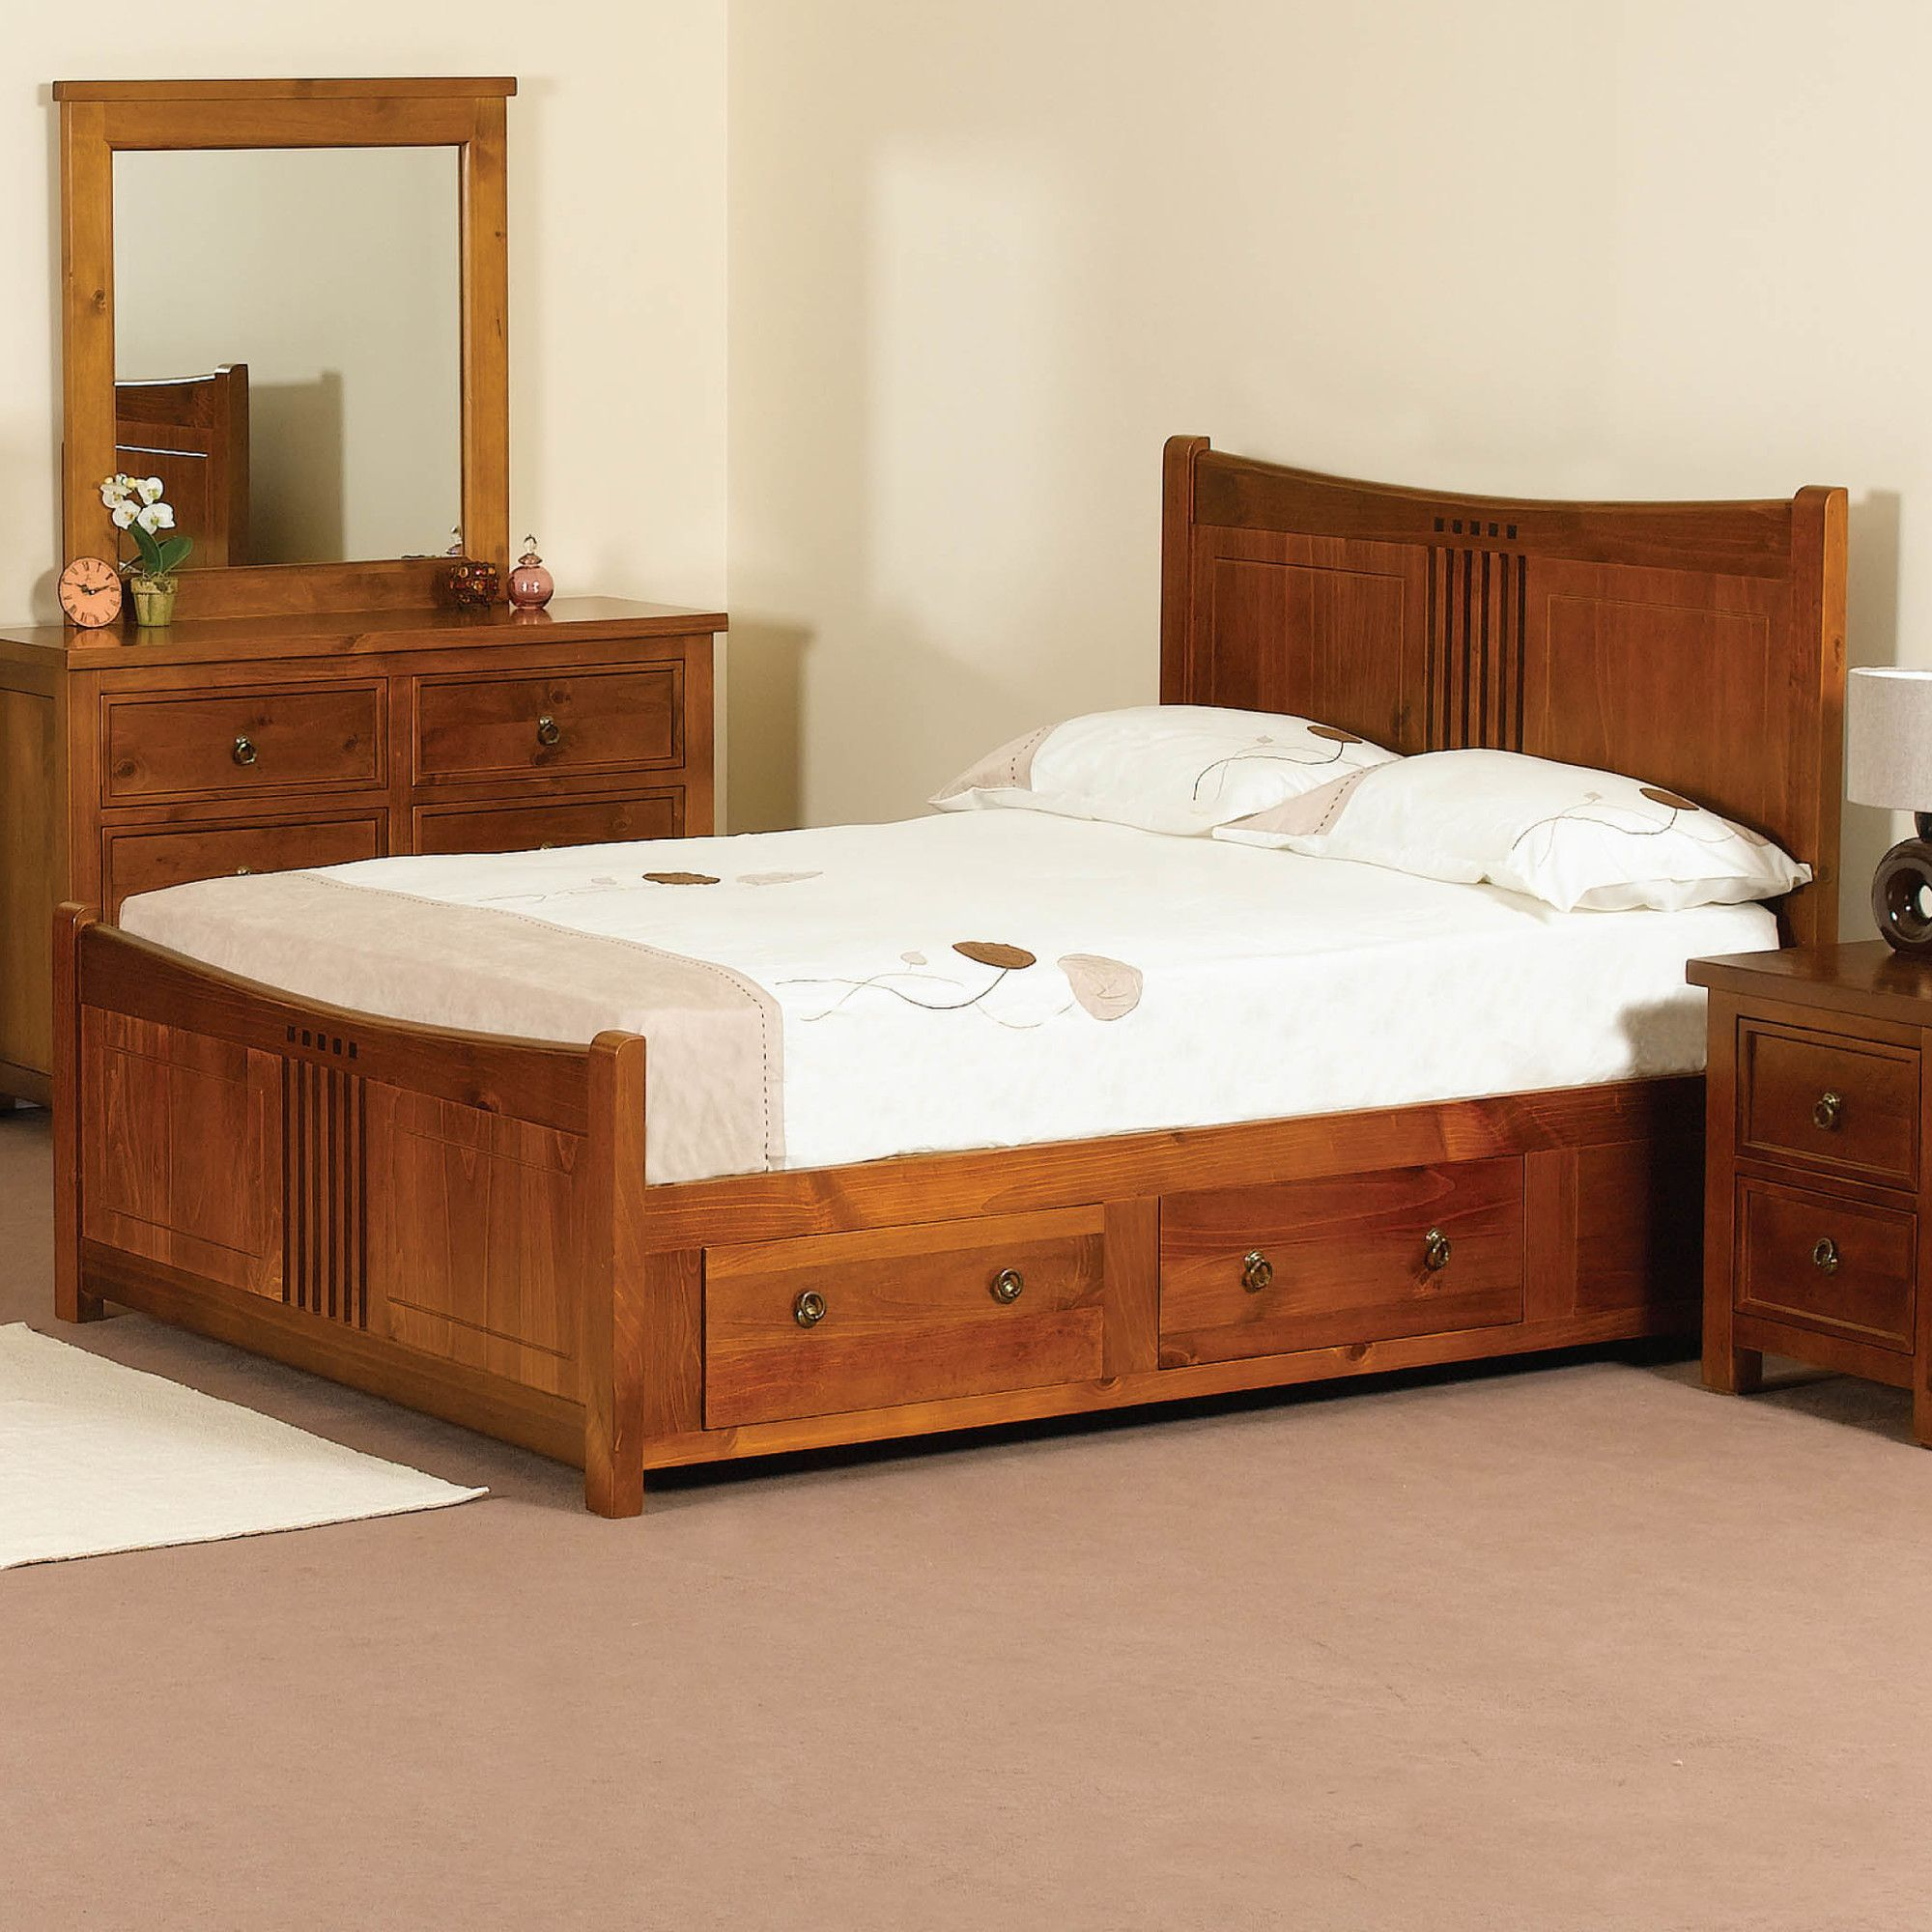 all home curlew bed frame reviews wayfair uk